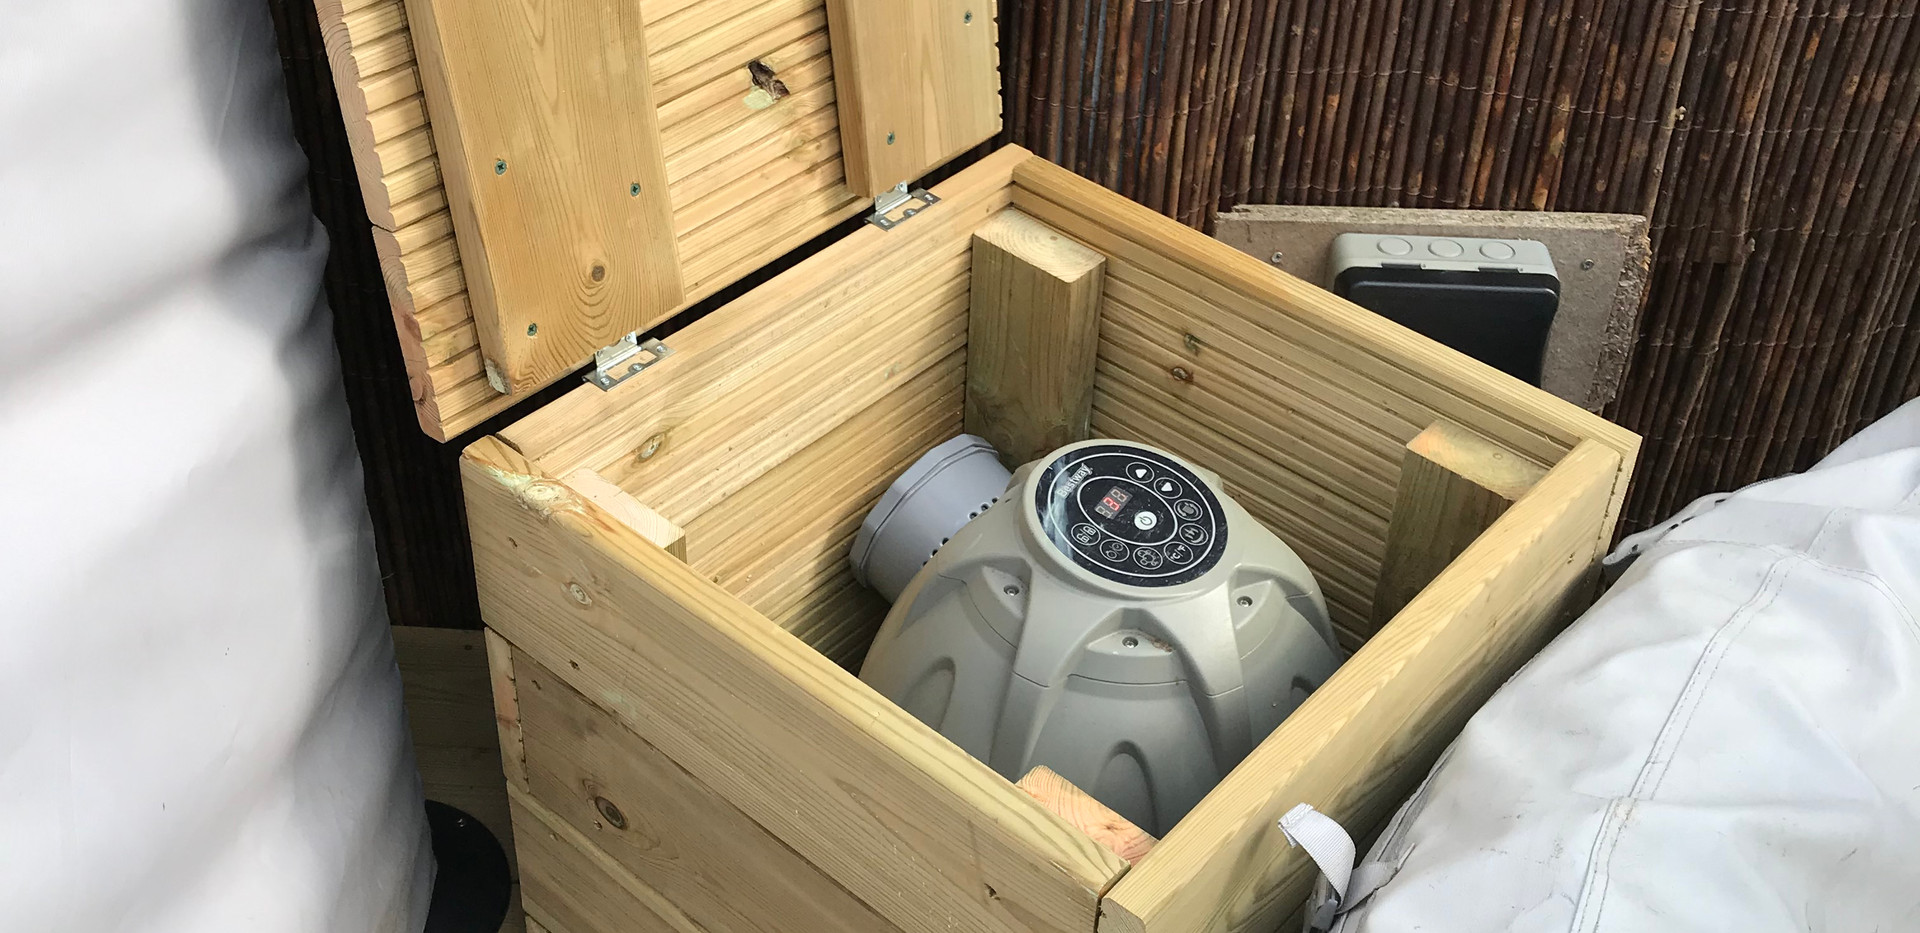 Hot tub pump housing